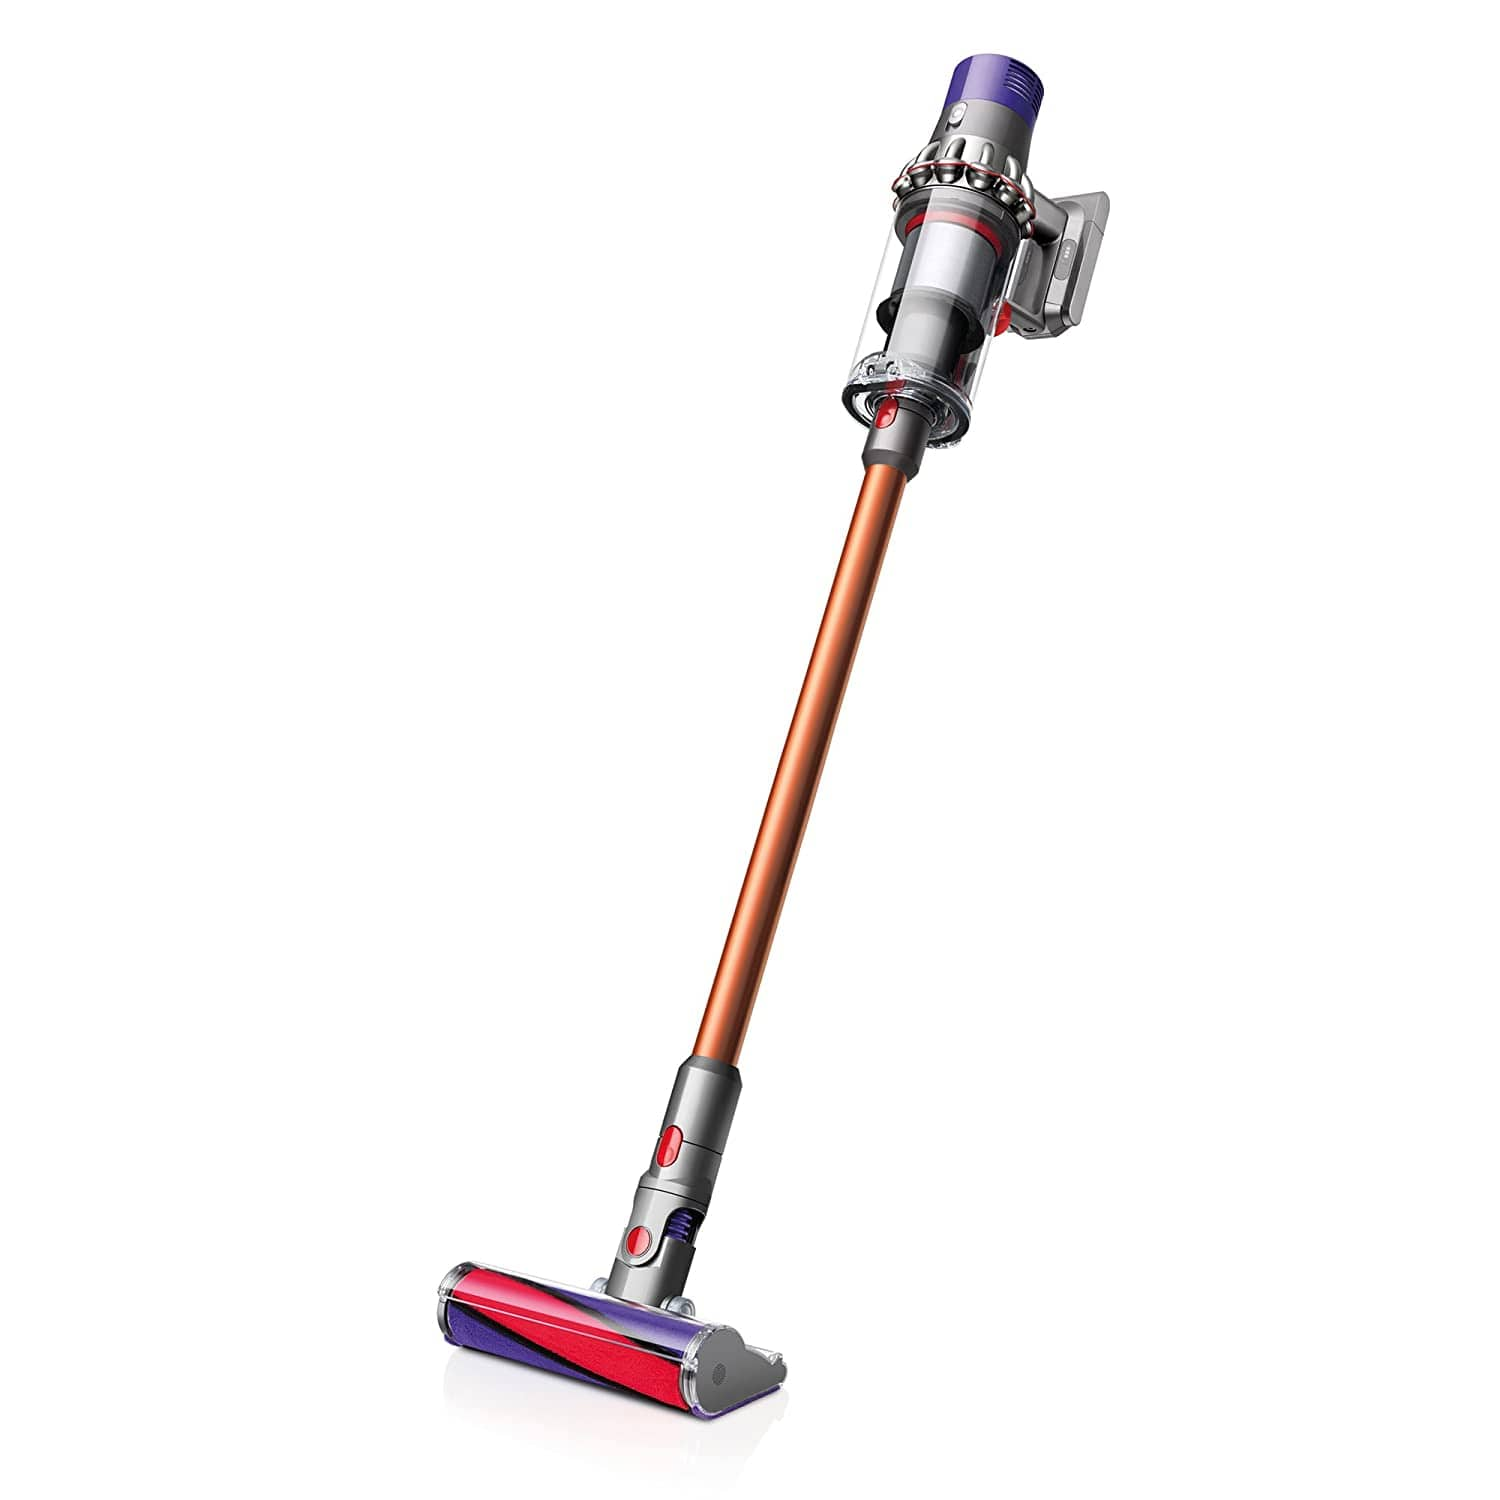 Dyson V10 Absolute Cordless Vacuum $399 on Amazon or Price Match at Dyson.com And Get The Free Dyson Dok